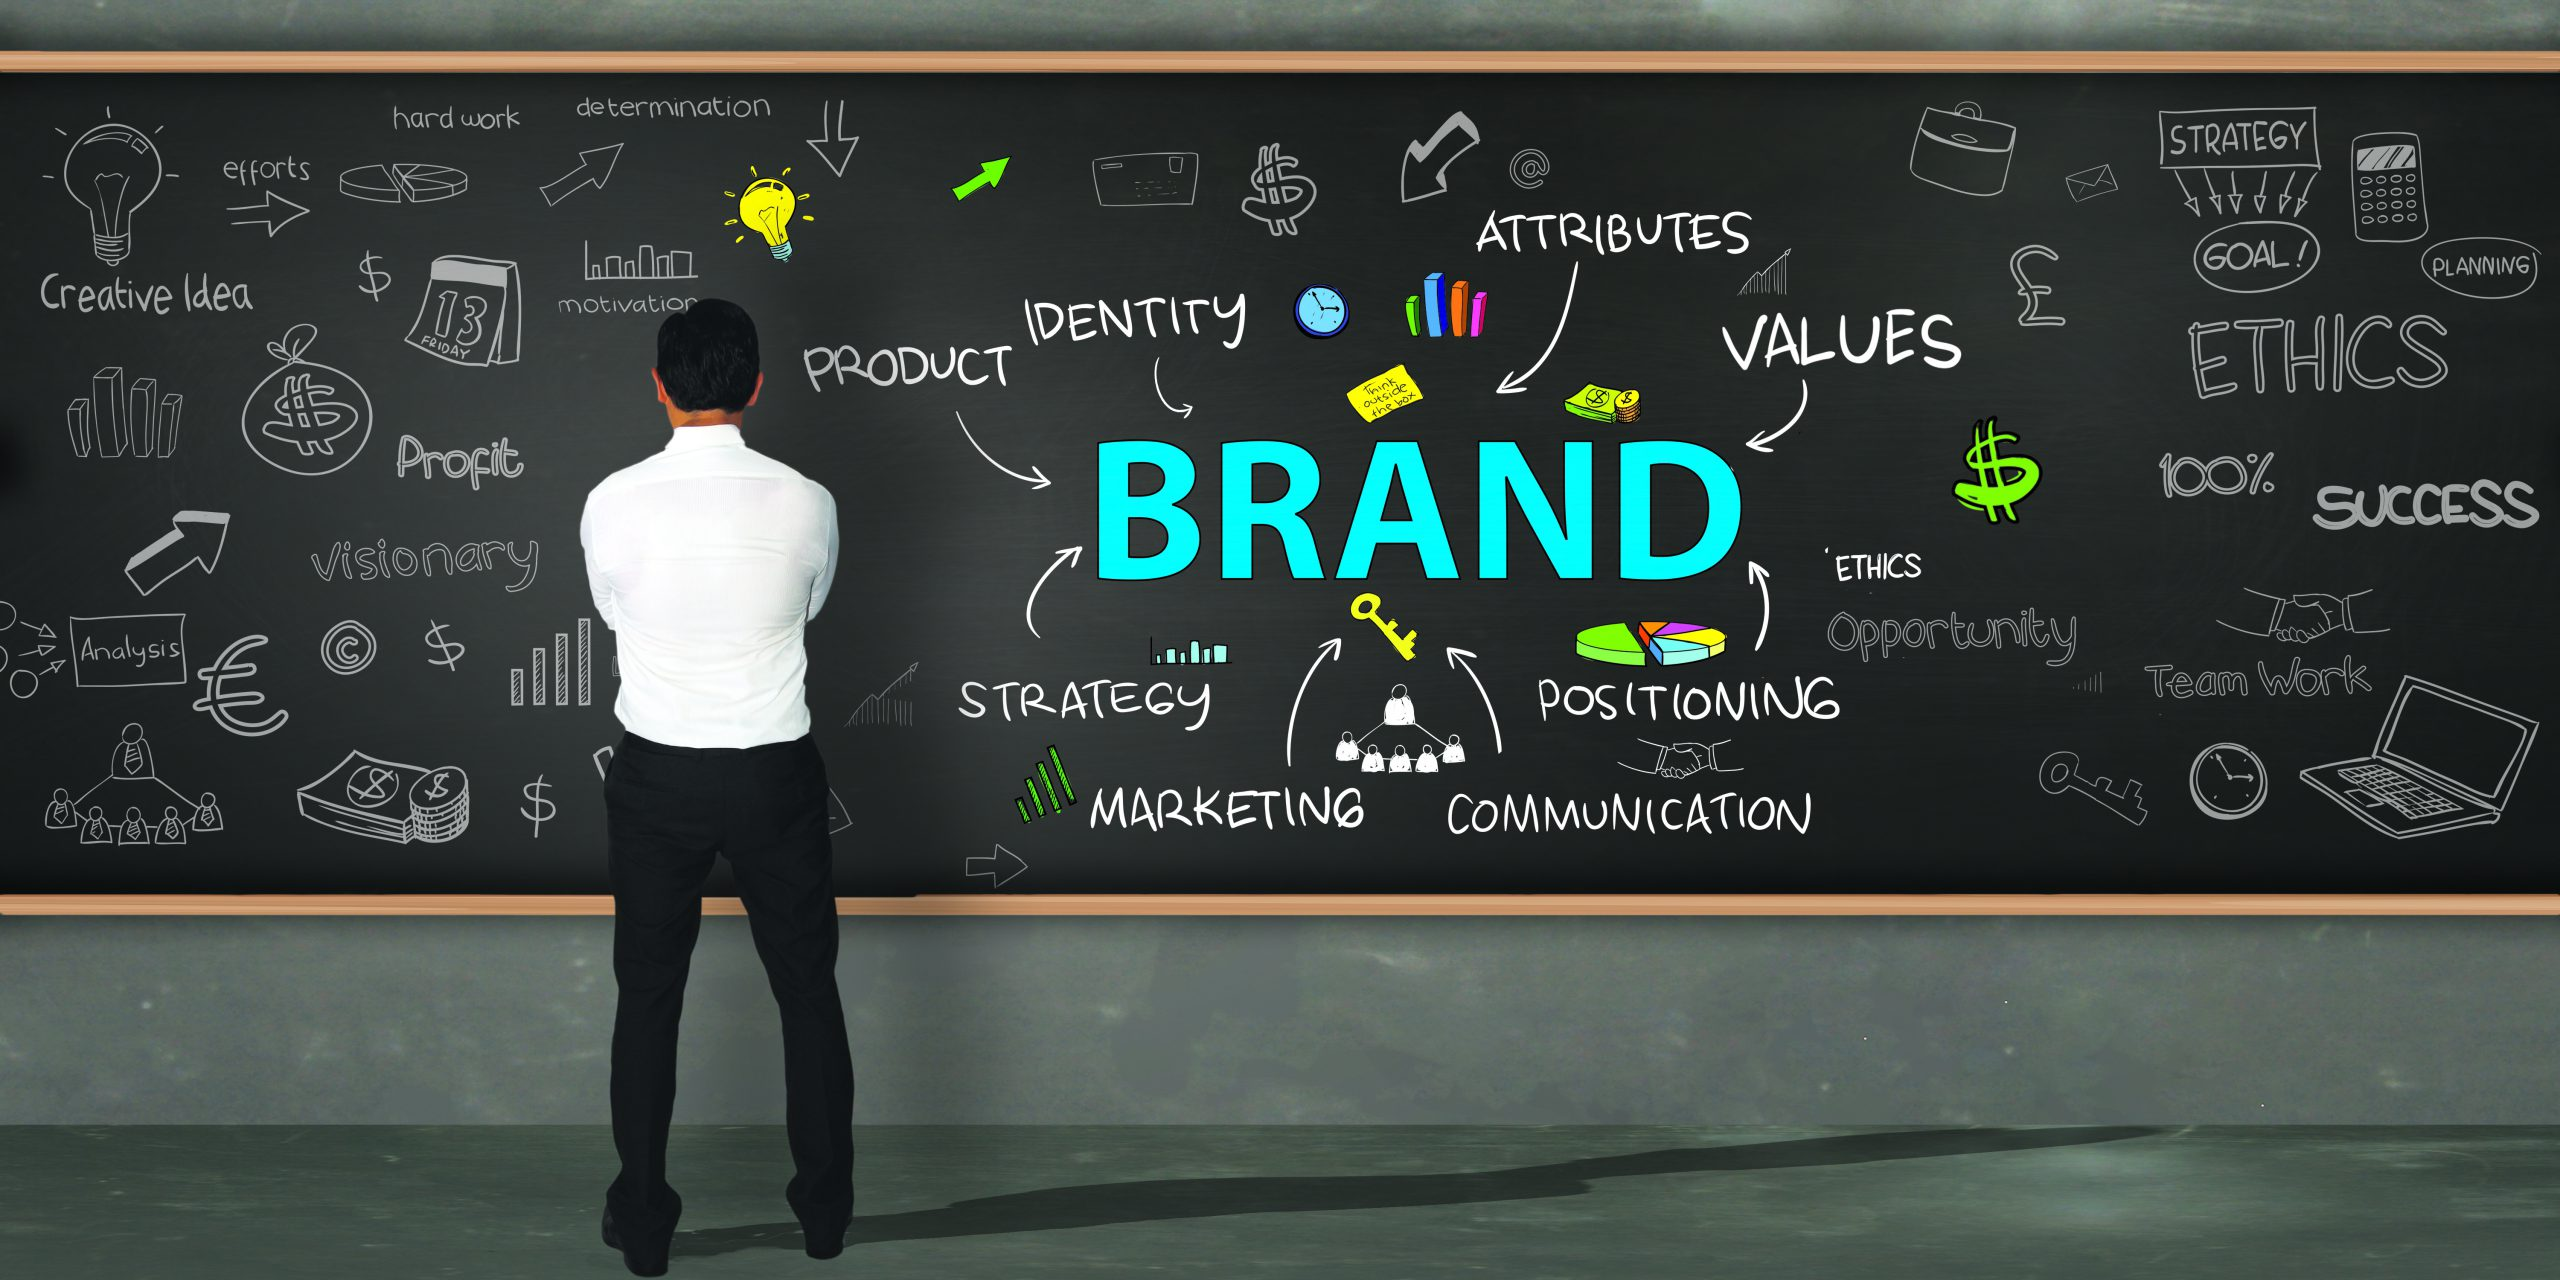 Brand. Motivational Inspirational Business Marketing Words Quote